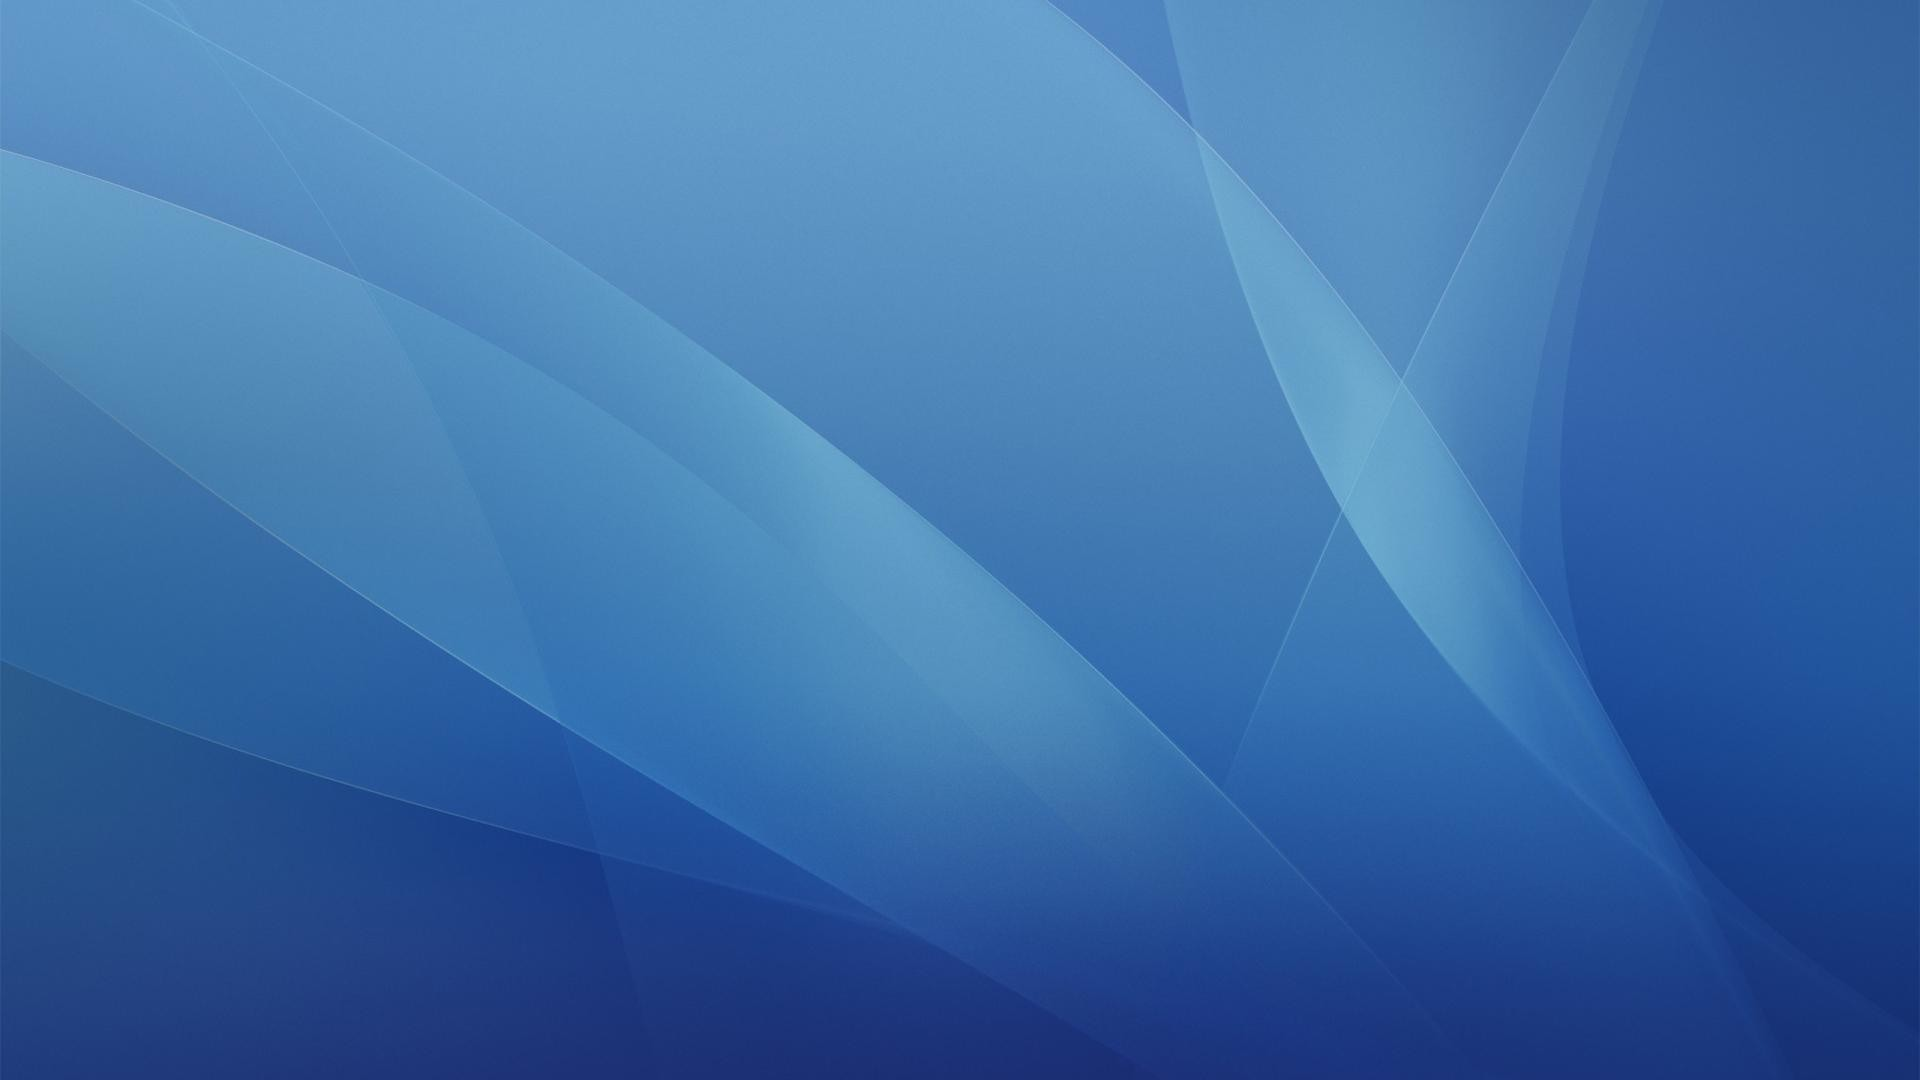 1920x1080  abstract Blue texture wallpaper background wide wallpapers:1280x800,1440x900,1680x1050  - hd